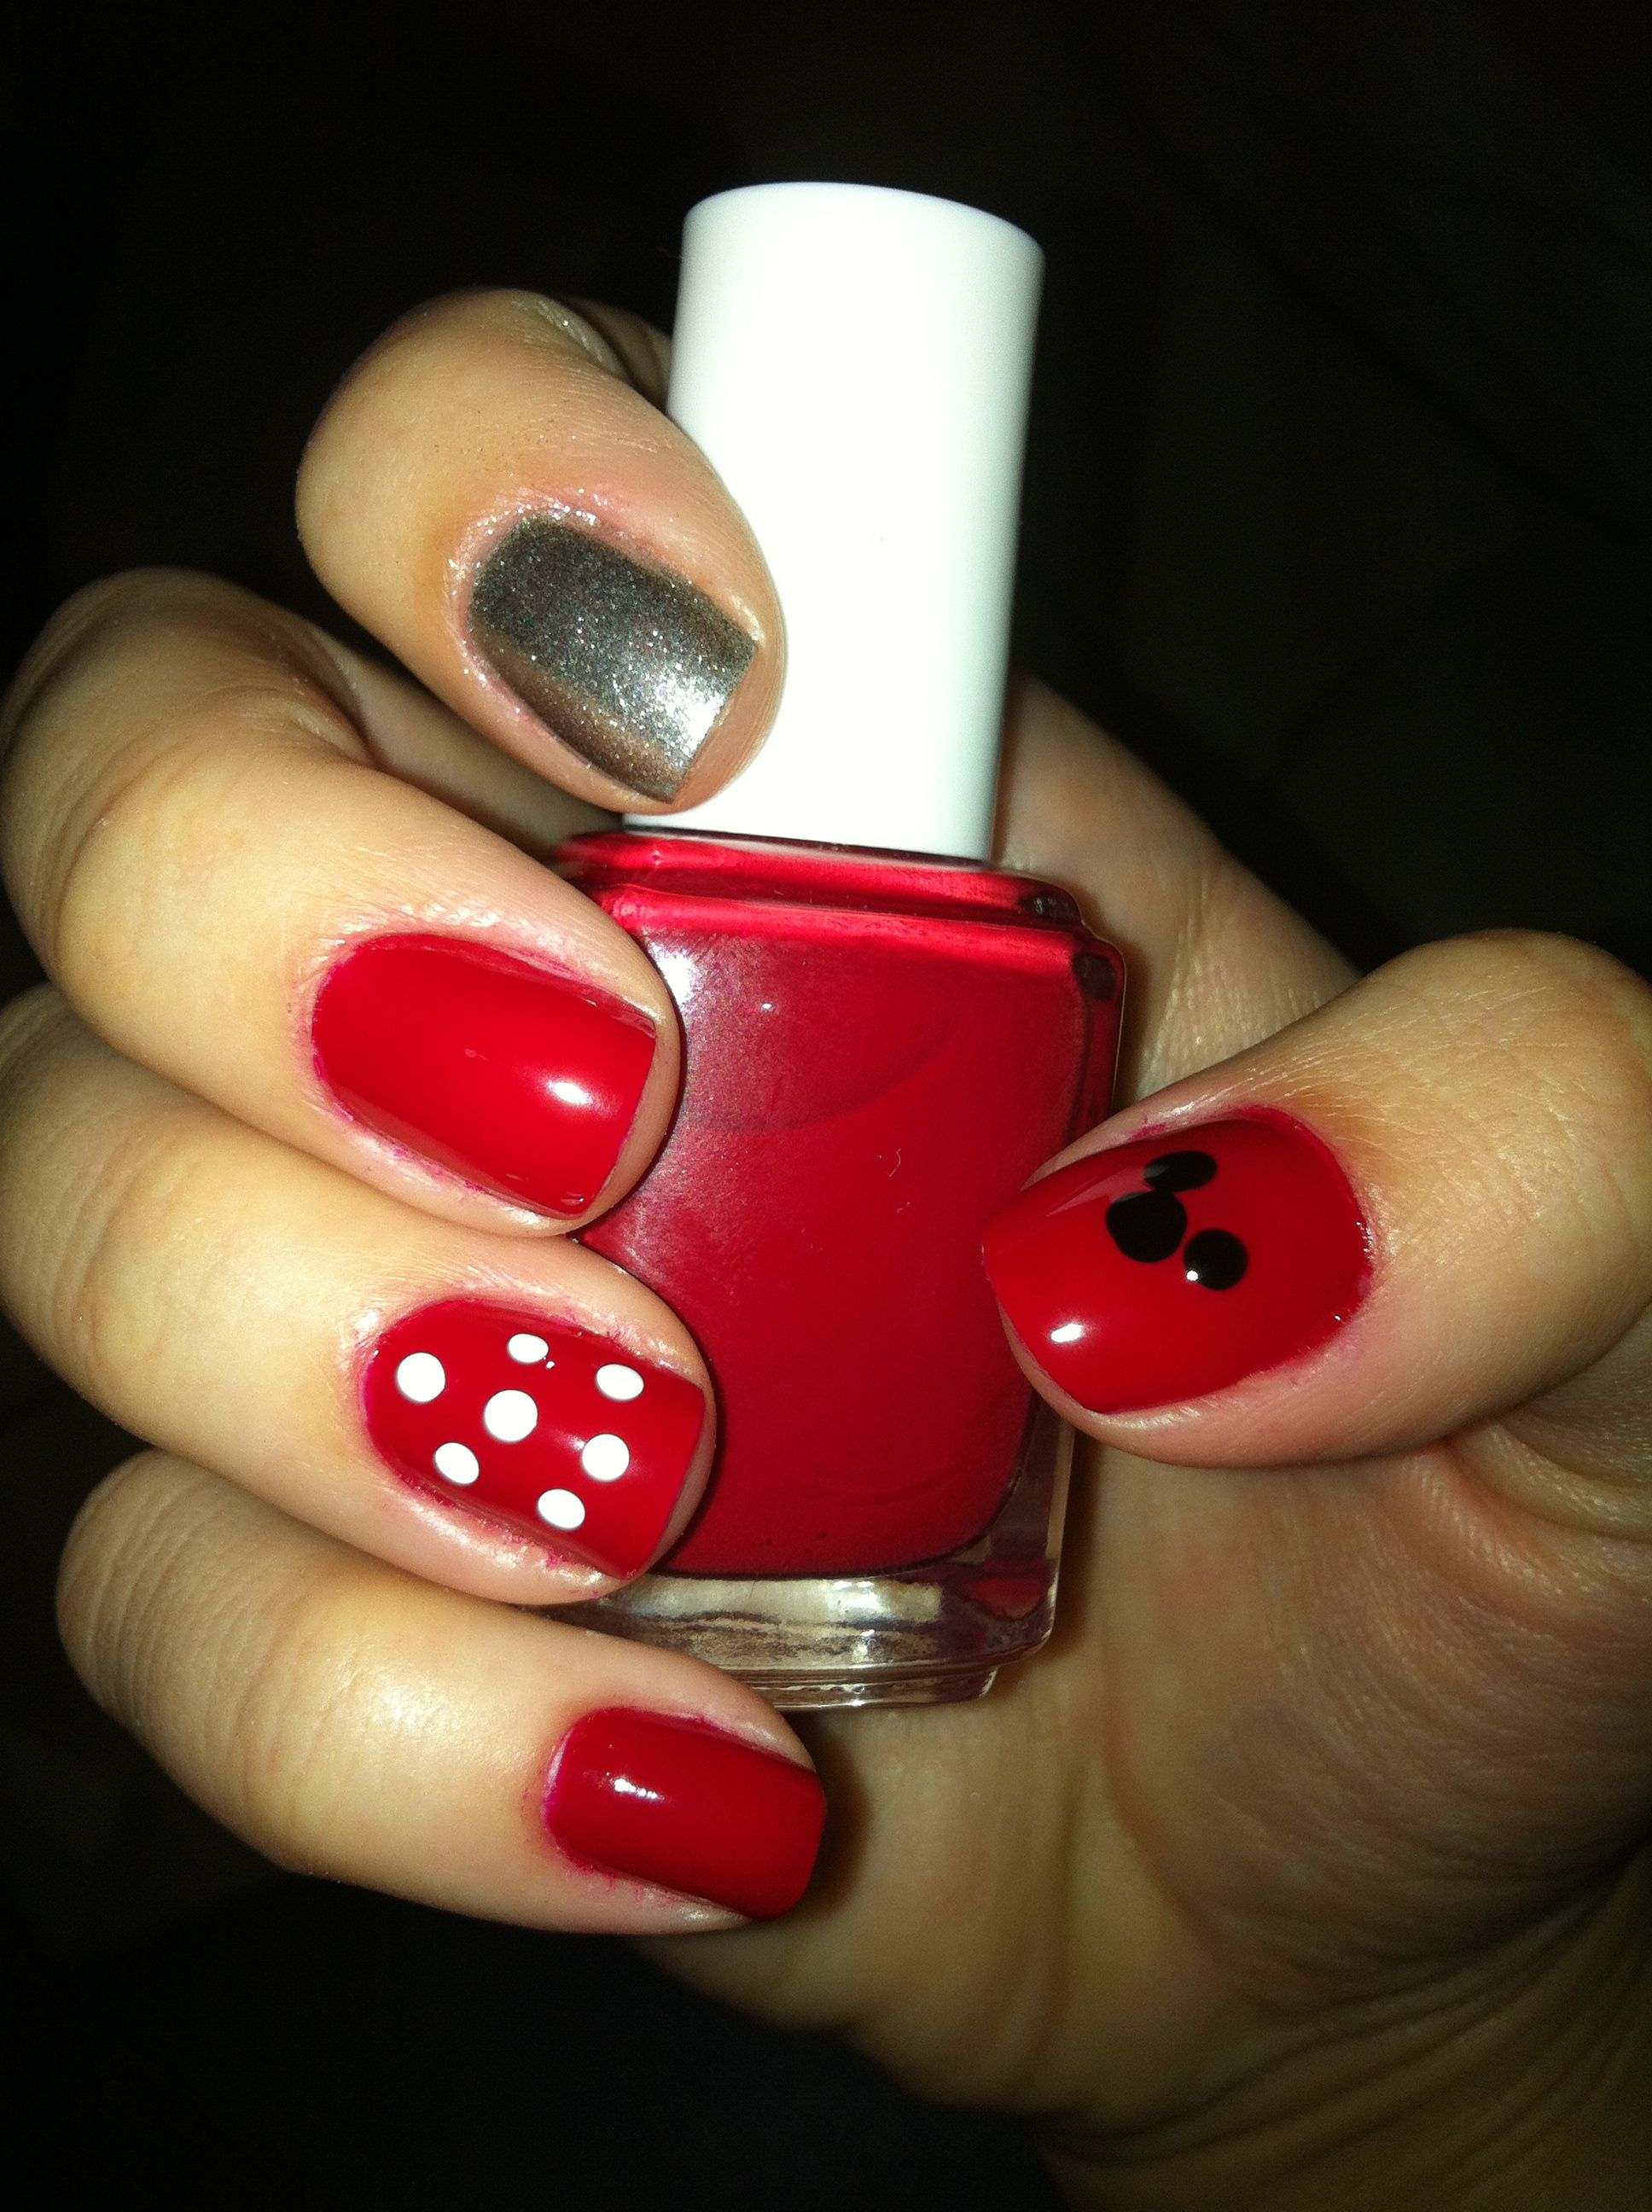 Disney nails- I bet we could do this ourselves! @Delana Hunt ...